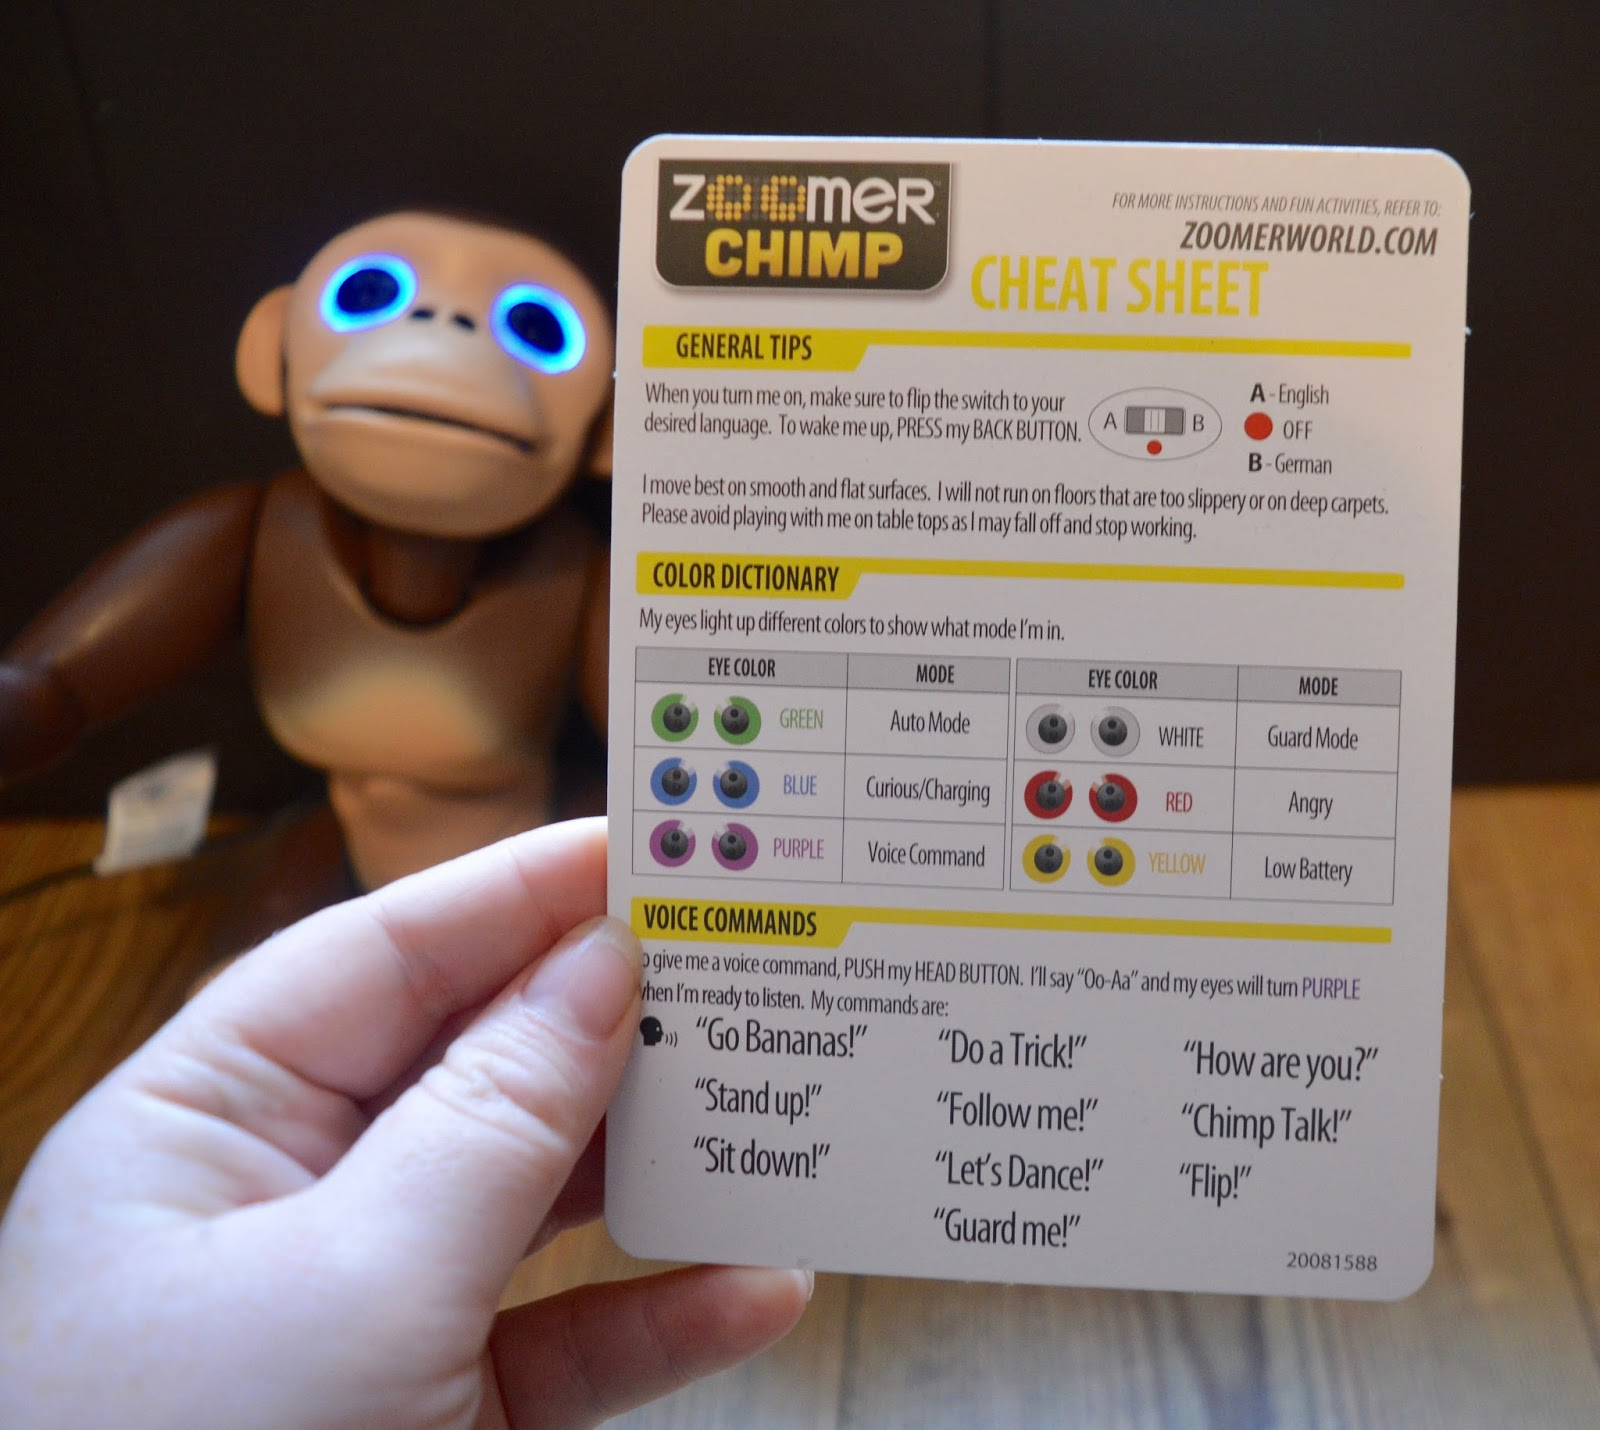 Zoomer Chimp Review | cheat sheet list of voice commands